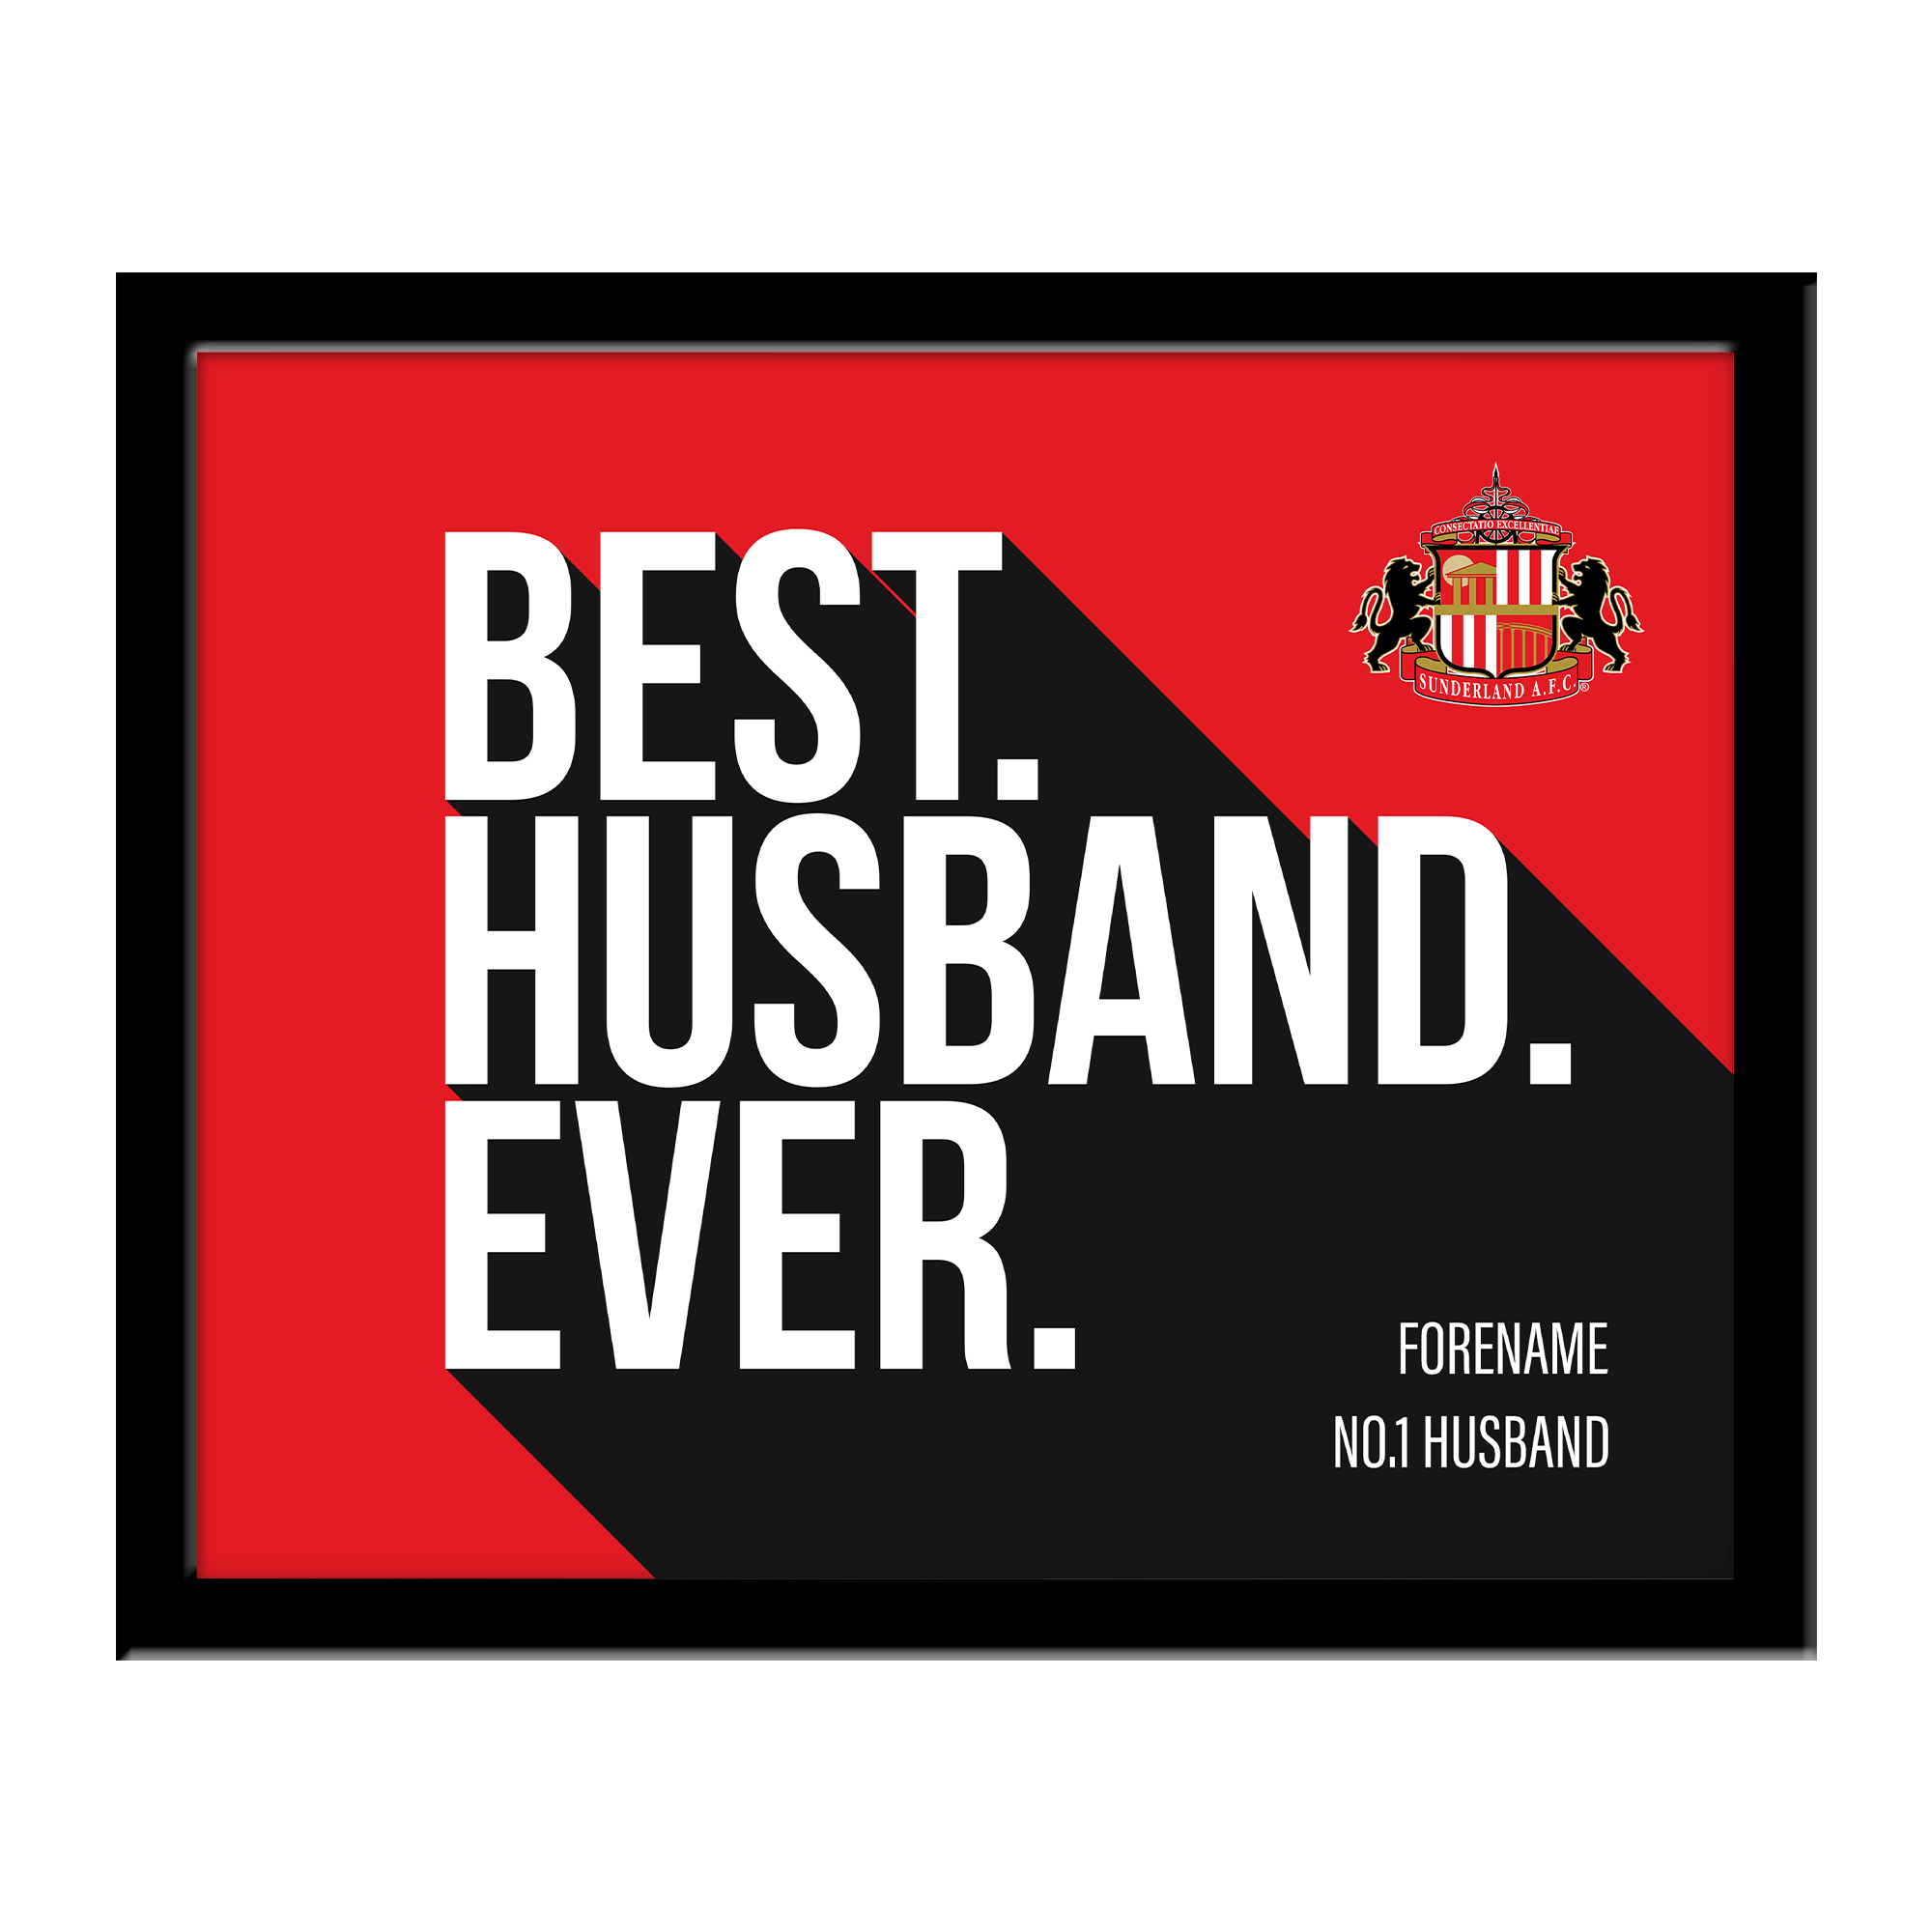 Sunderland Best Husband Ever 10 x 8 Photo Framed